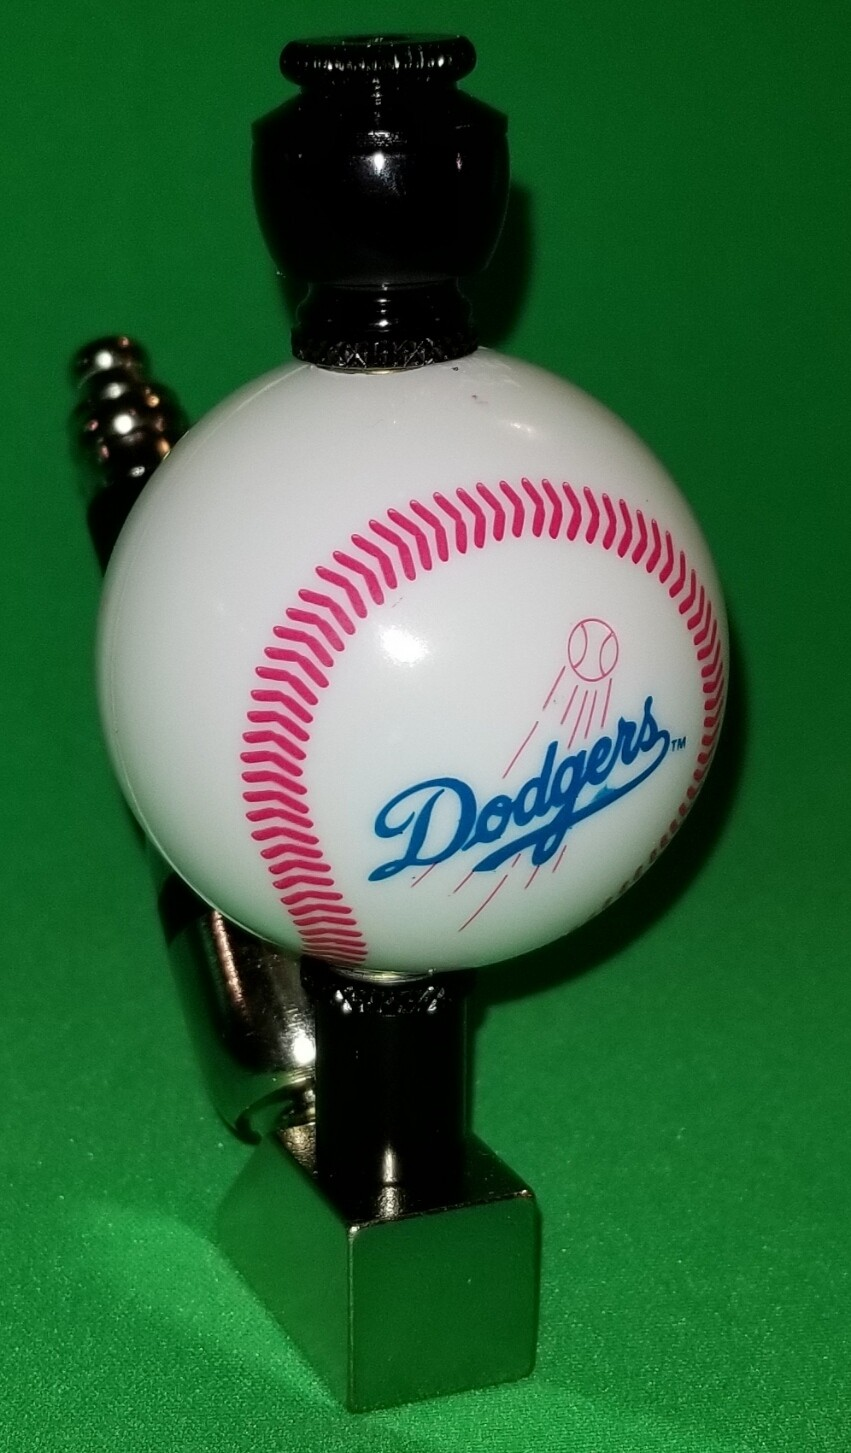 """LOS ANGELES DODGERS """"BAD ASS"""" BASEBALL PIPE Wedge/Nickel/Black Anodized"""